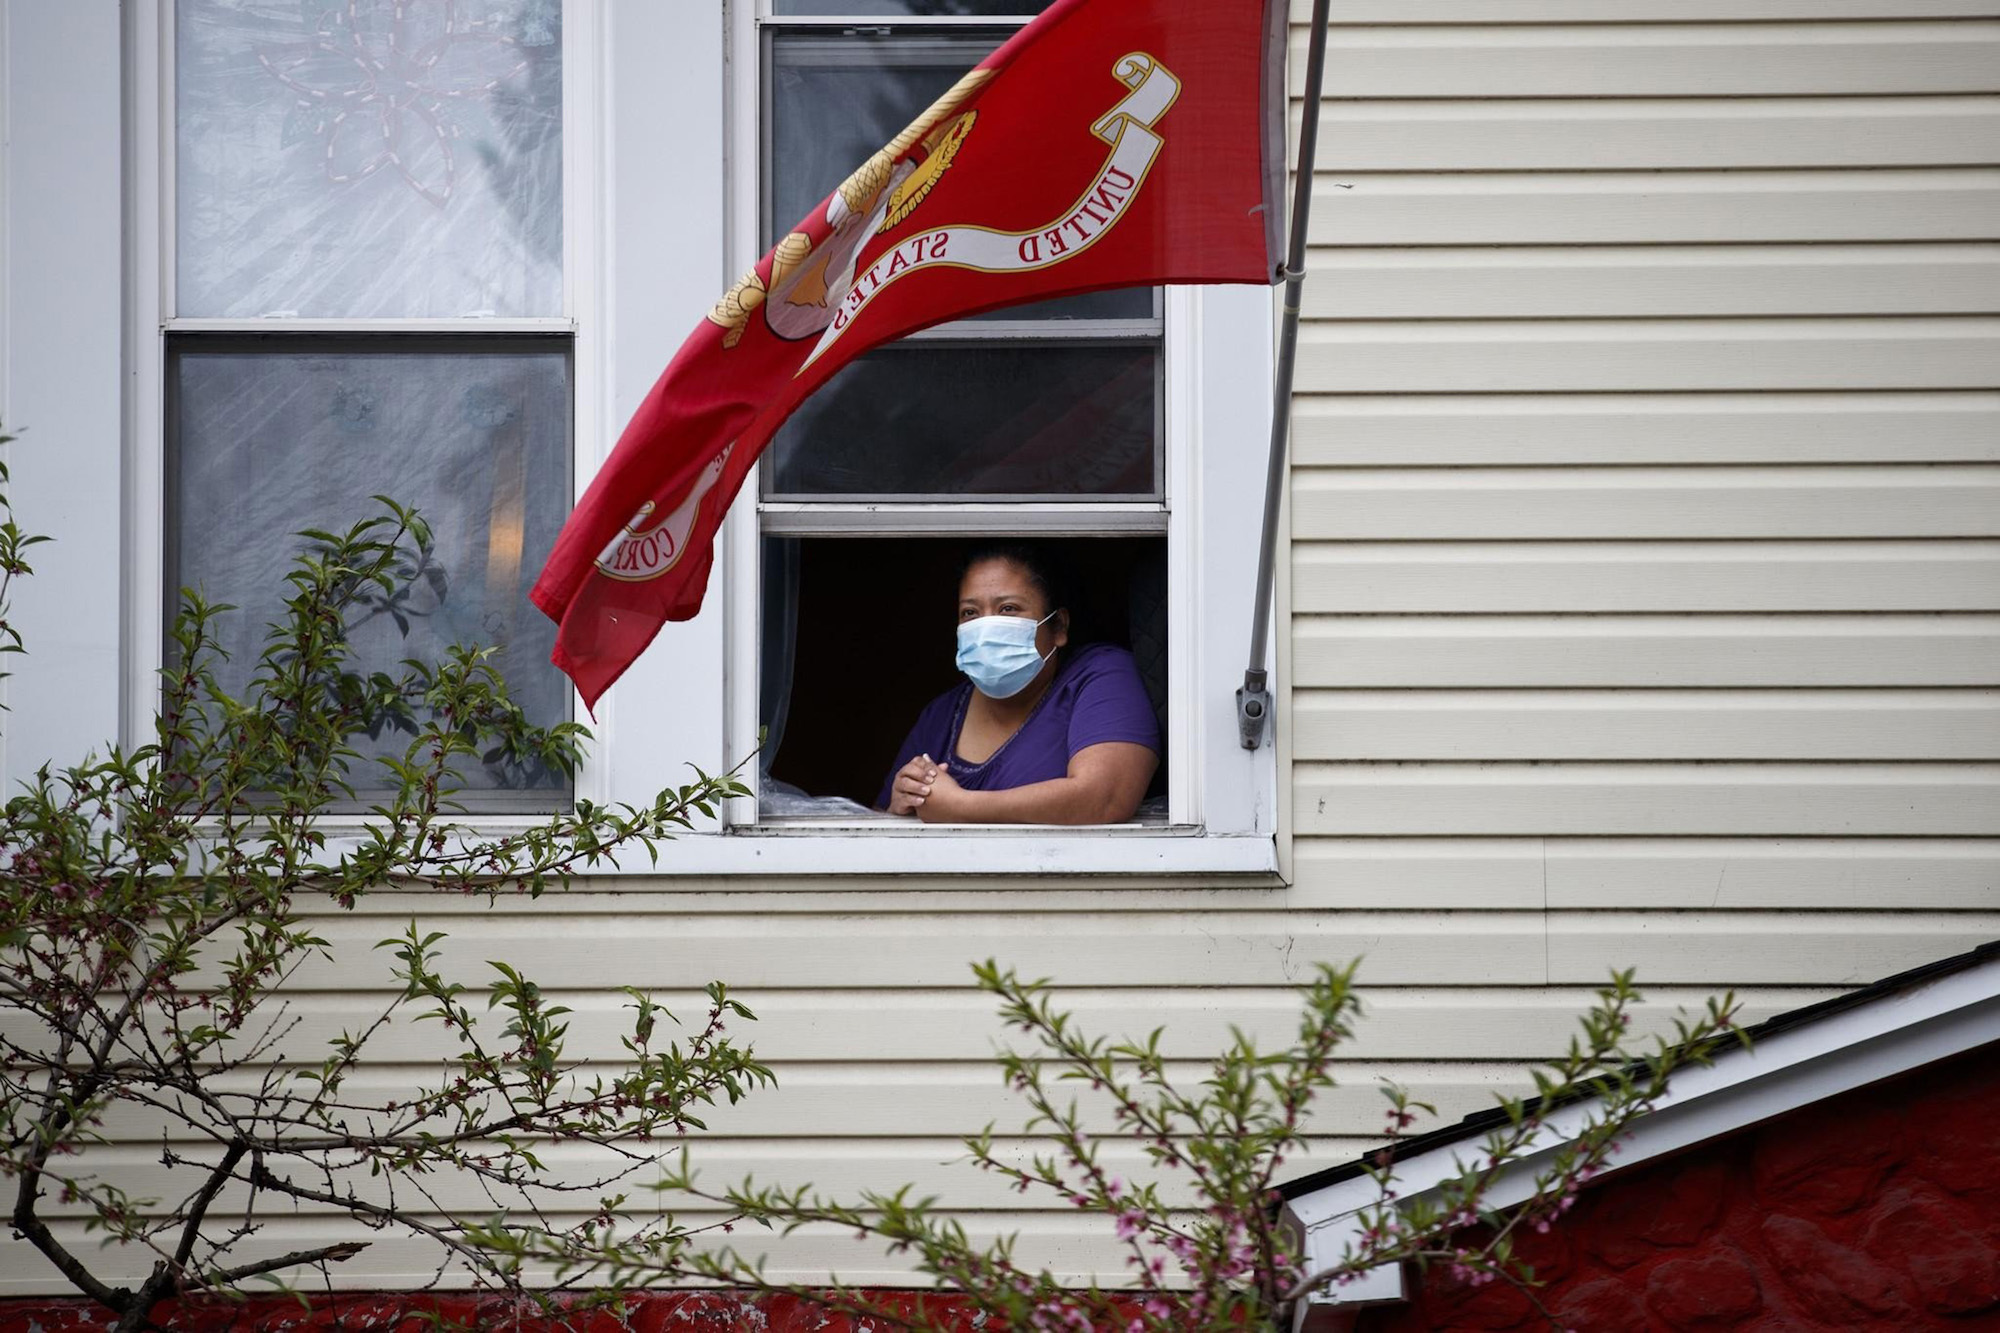 a photo of a woman wearing a surgical mask looking out the window of her home